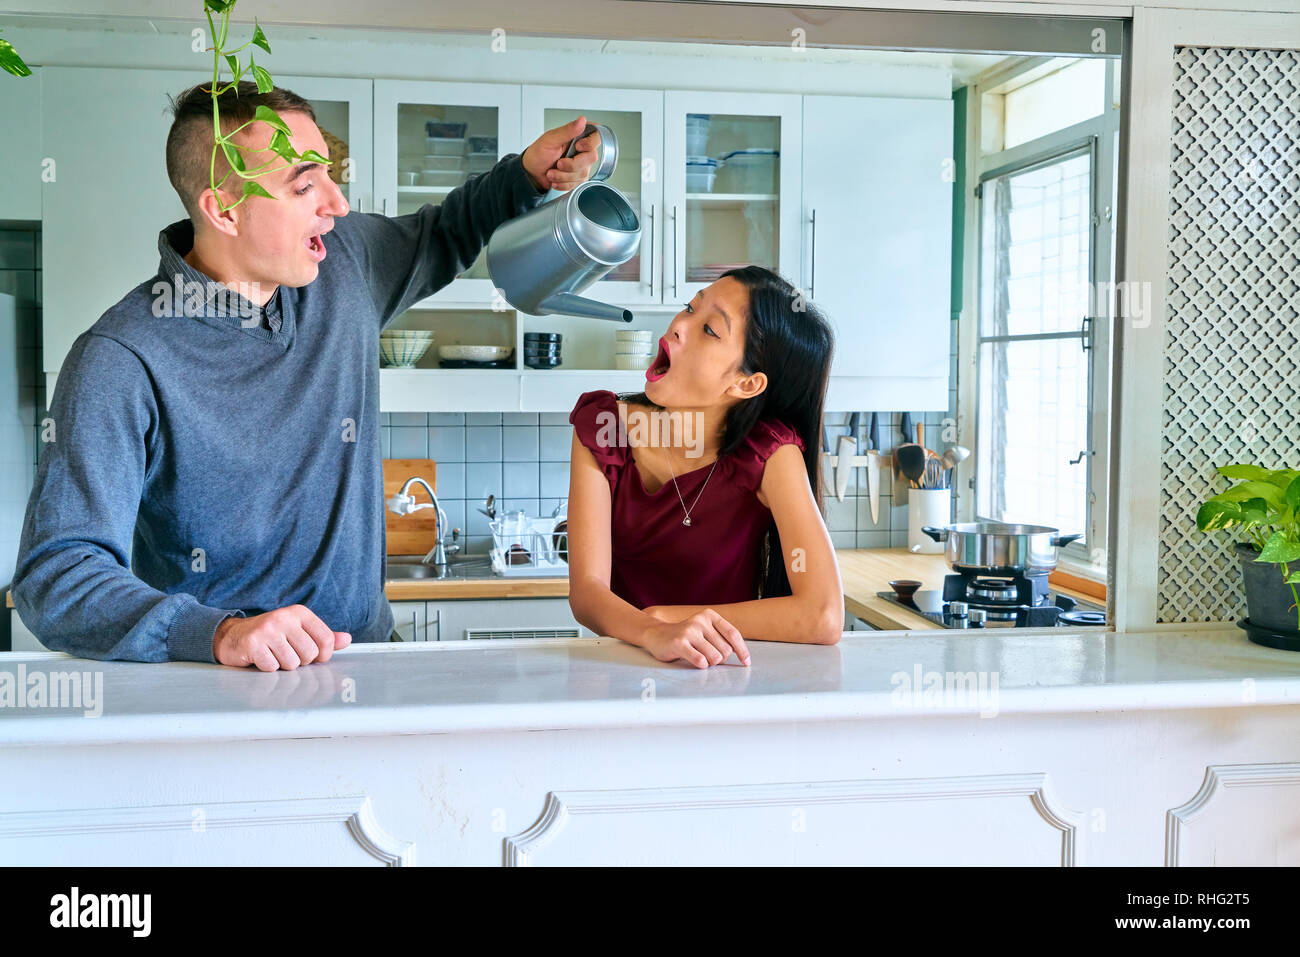 You want to drink, then open your mouth. - Stock Image